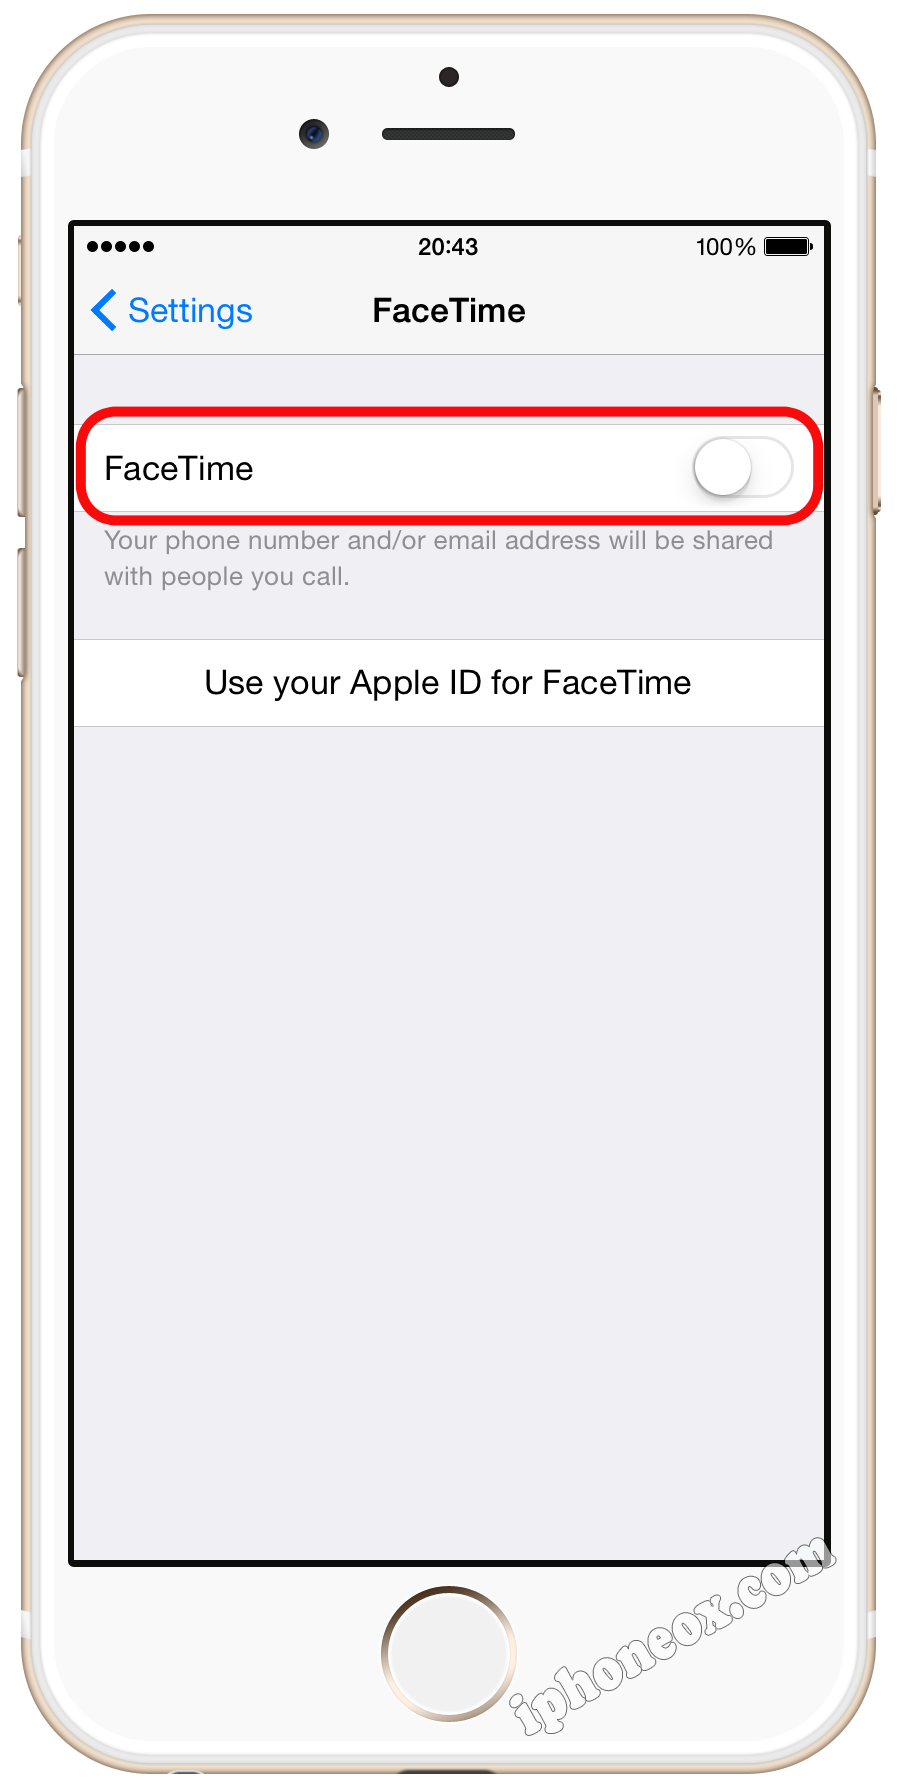 Tap Settings > iFace and turn iFace off